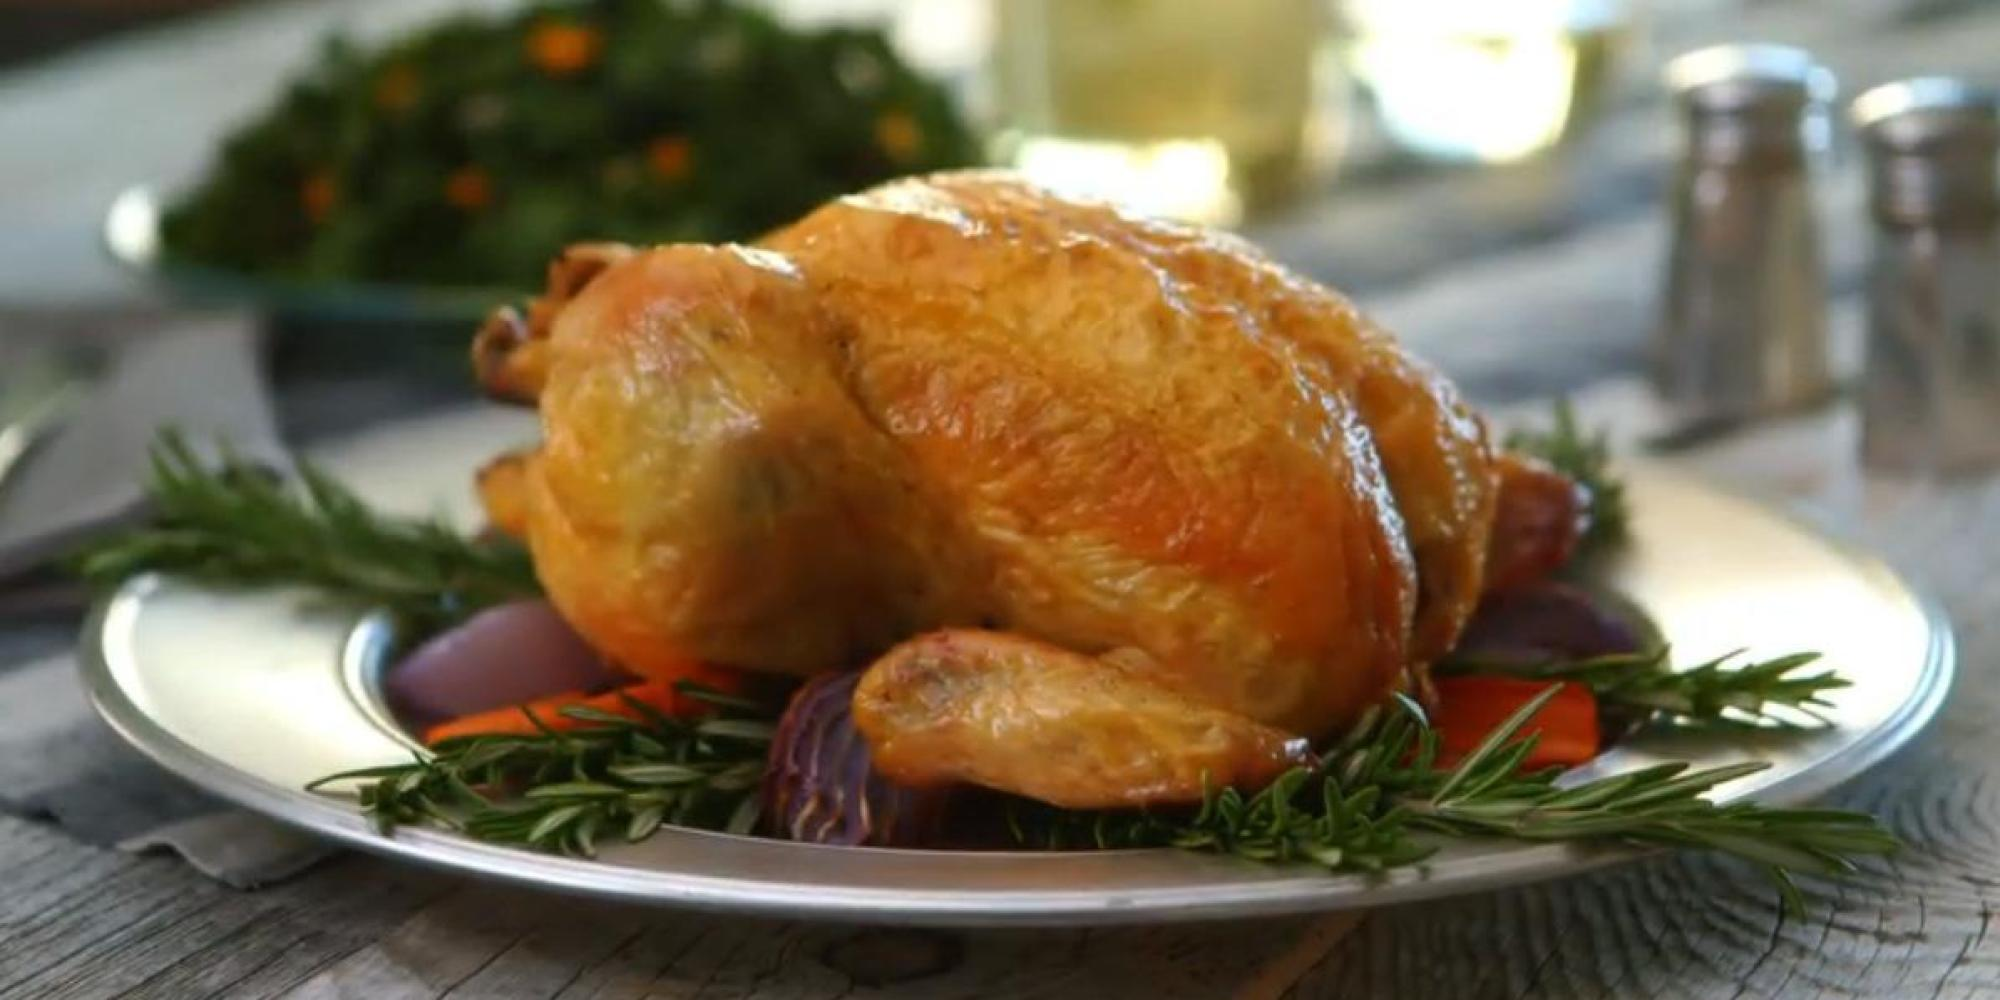 Sunday Dinner: Lemon Rosemary Roasted Chicken (VIDEO)